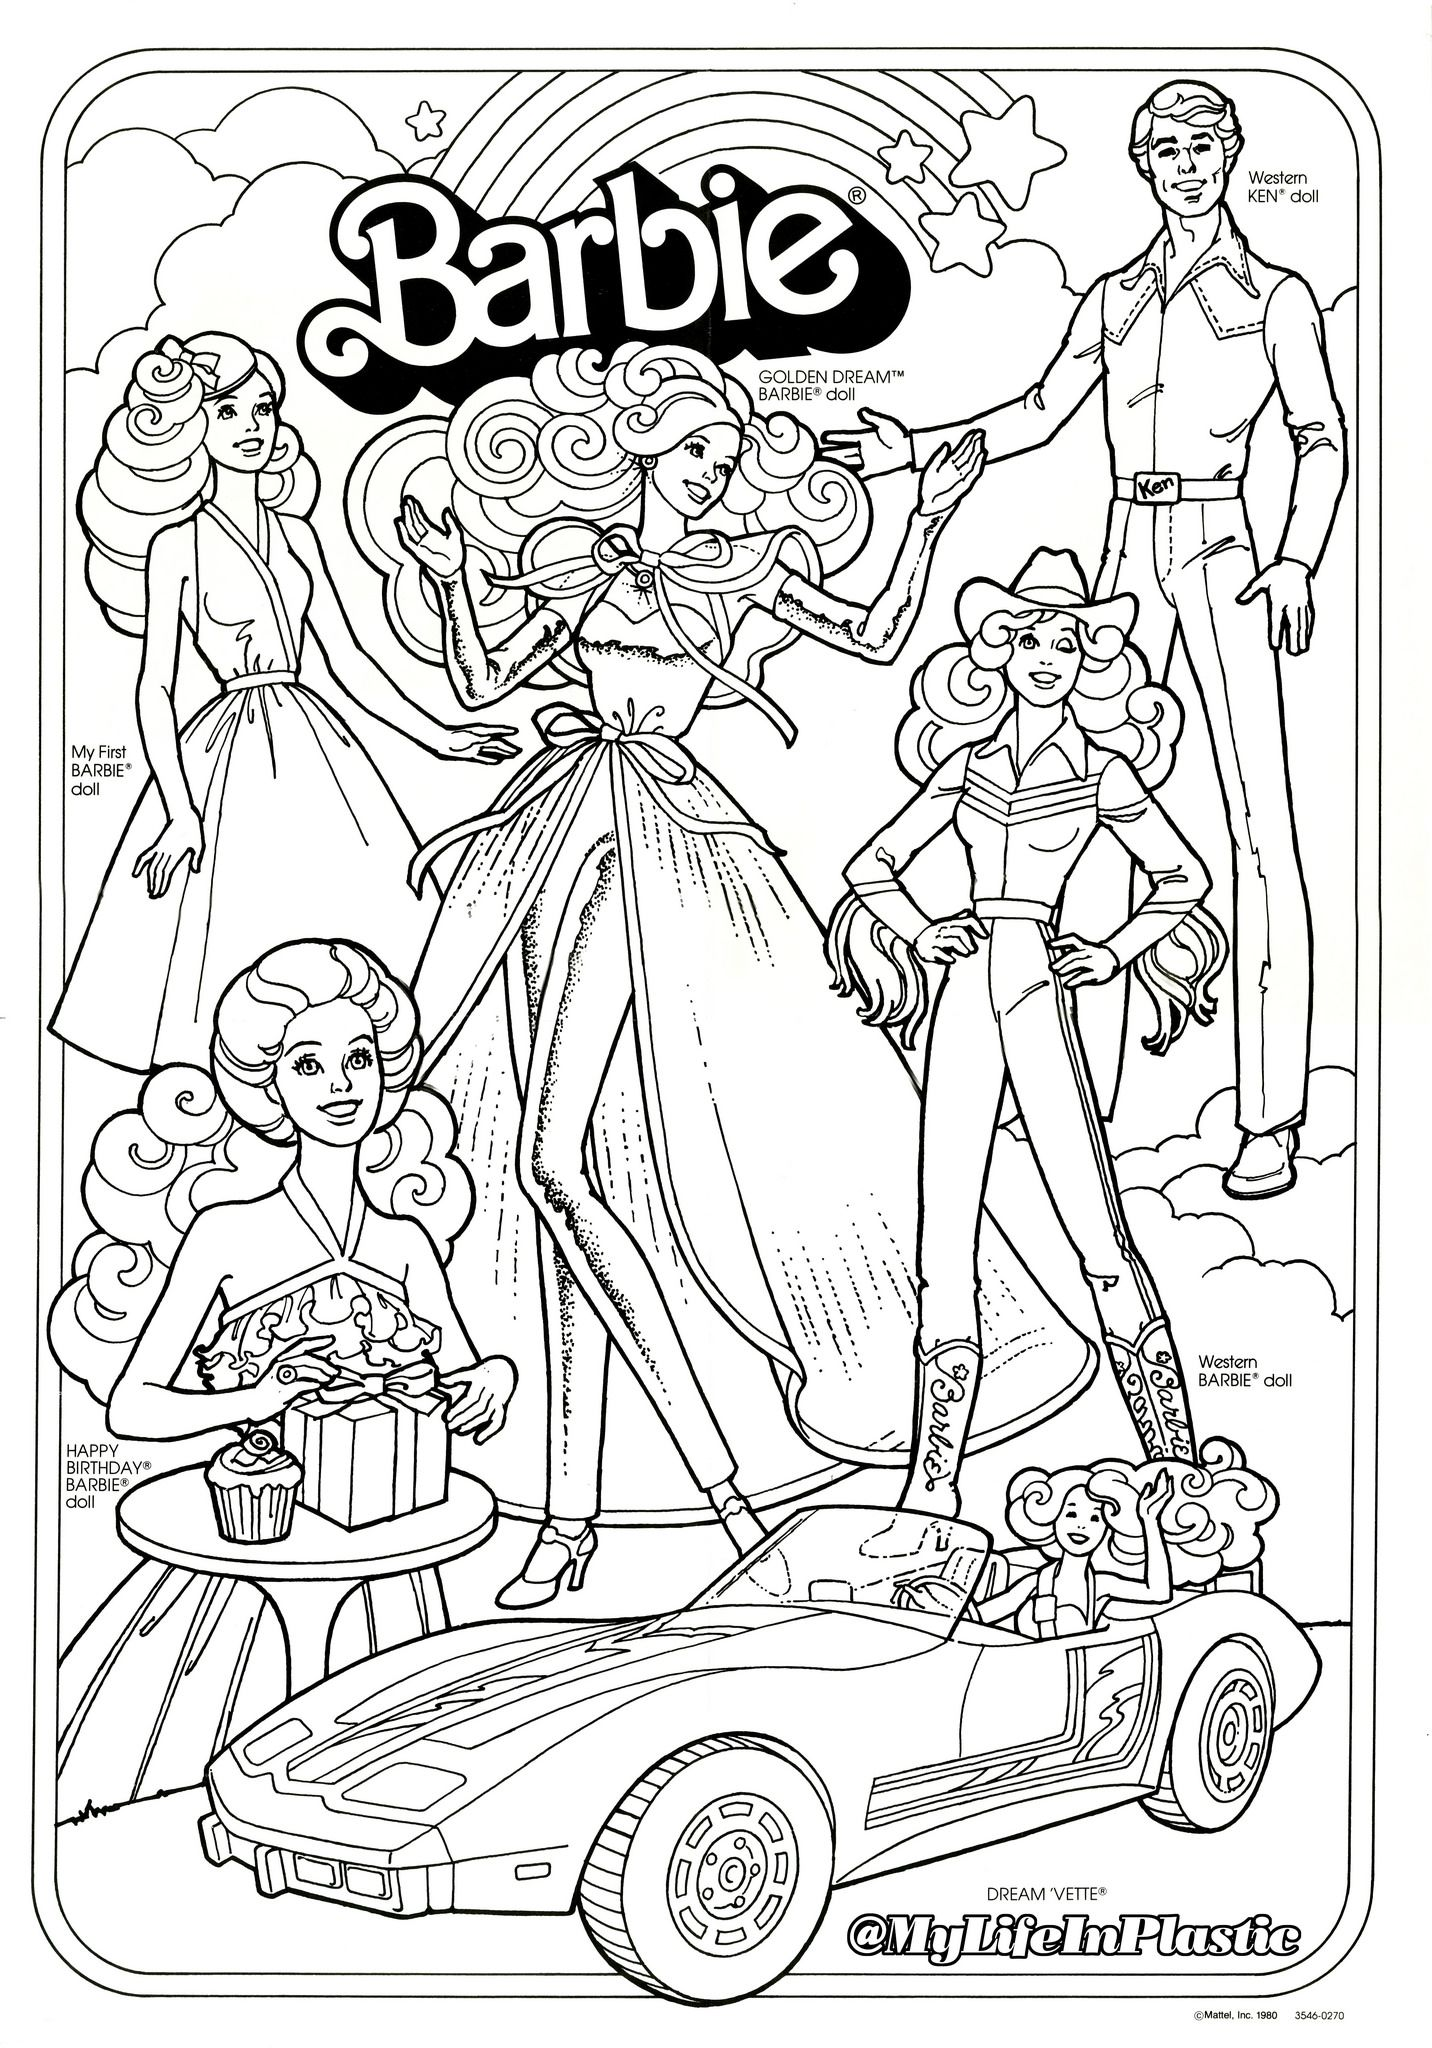 Whitman hot wheels coloring book - Barbie Coloring Page 381